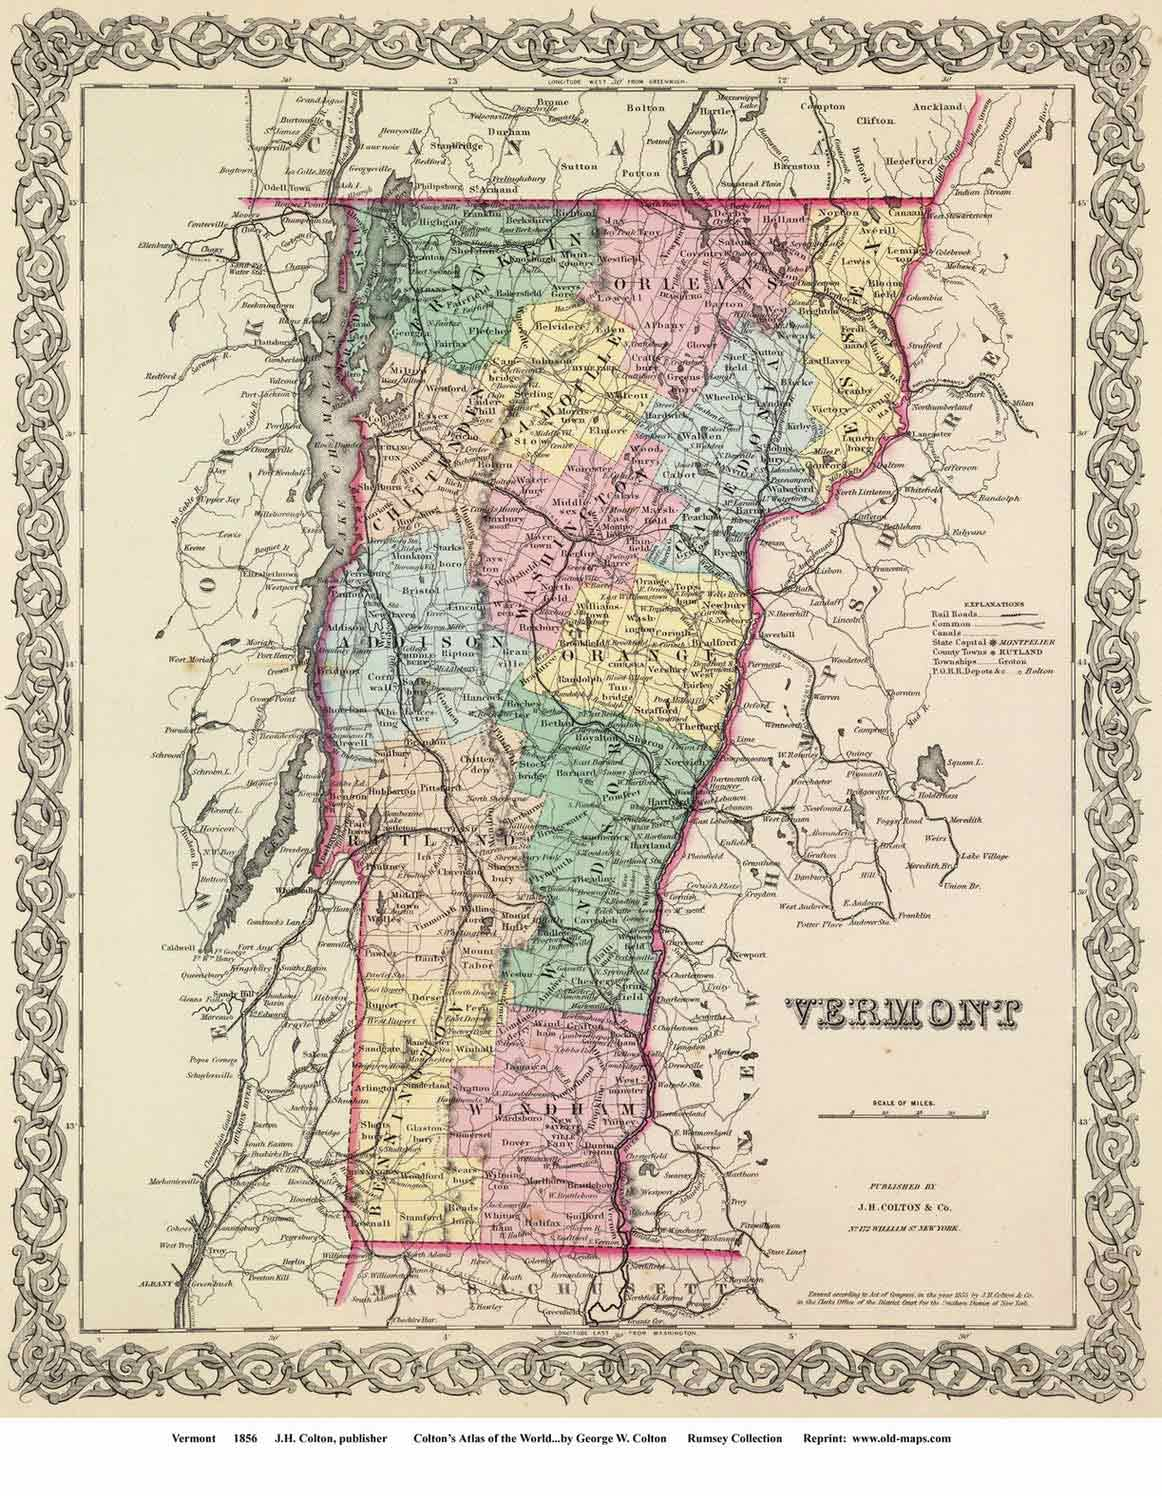 Coltons Map of Vermont 1856